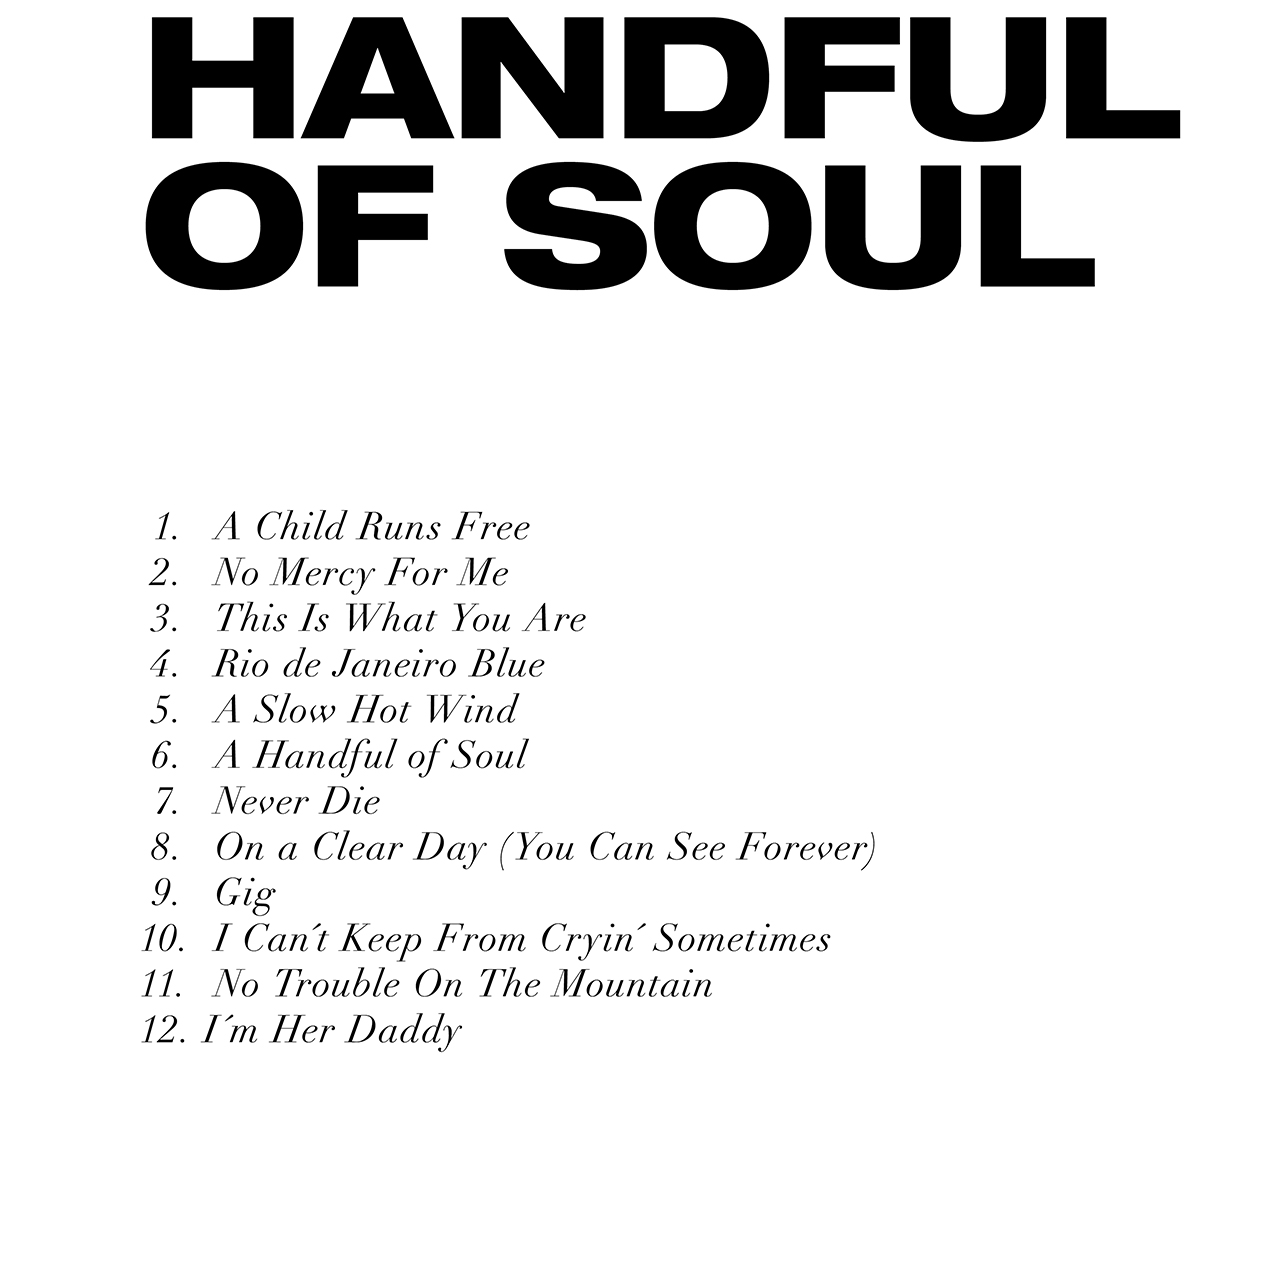 Handful of Soul - tracce